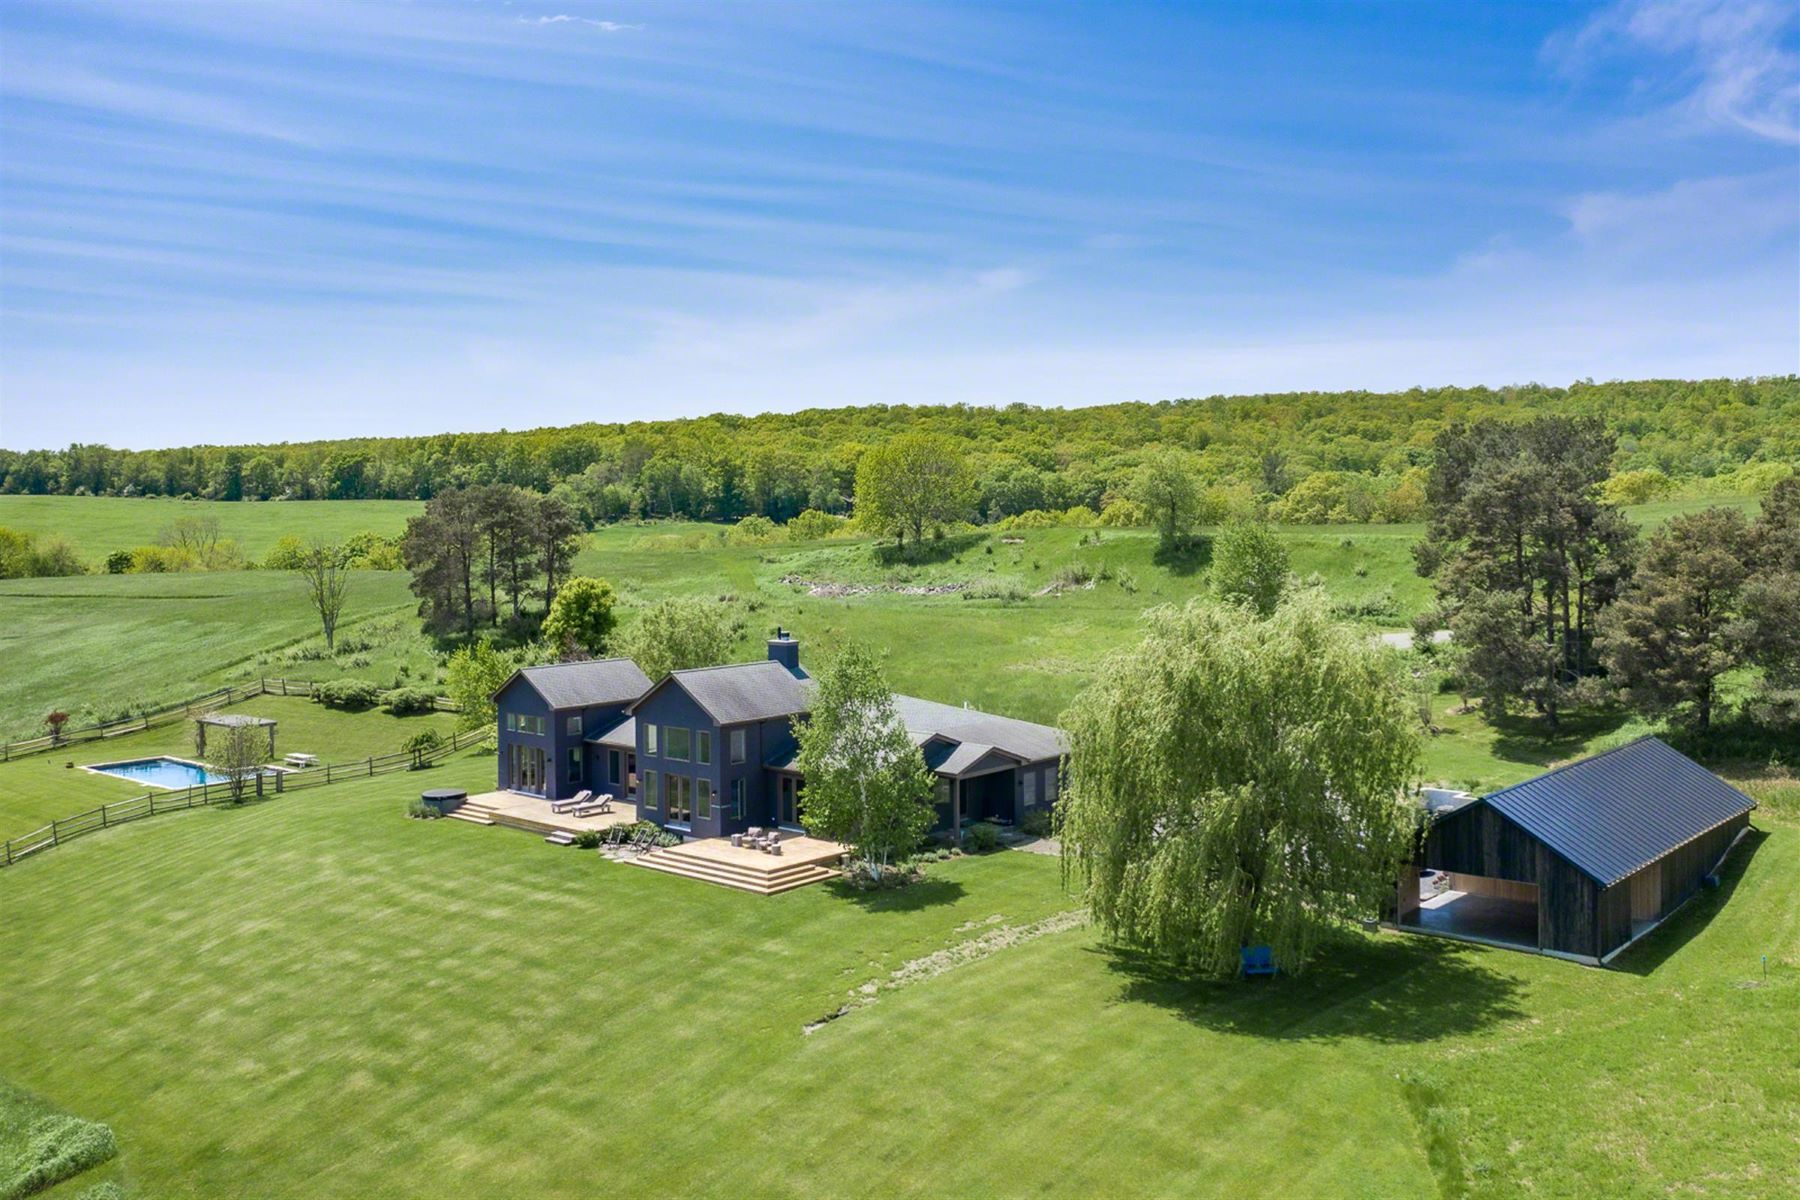 Single Family Homes for Sale at Big Sky Contemporary 23 Old Gordon Farm Rd Ancram, New York 12502 United States